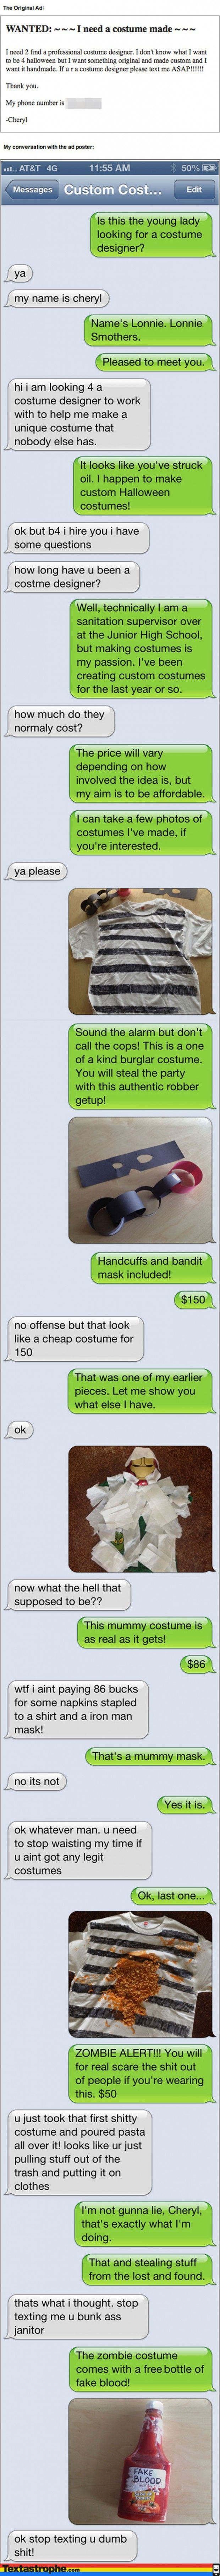 "Text Pranks: http://news.distractify.com/fun/bizarre/the-most-epic-text-pranks-of-all-time/?v=1 ""The Custom Costume"" one is my favorite."